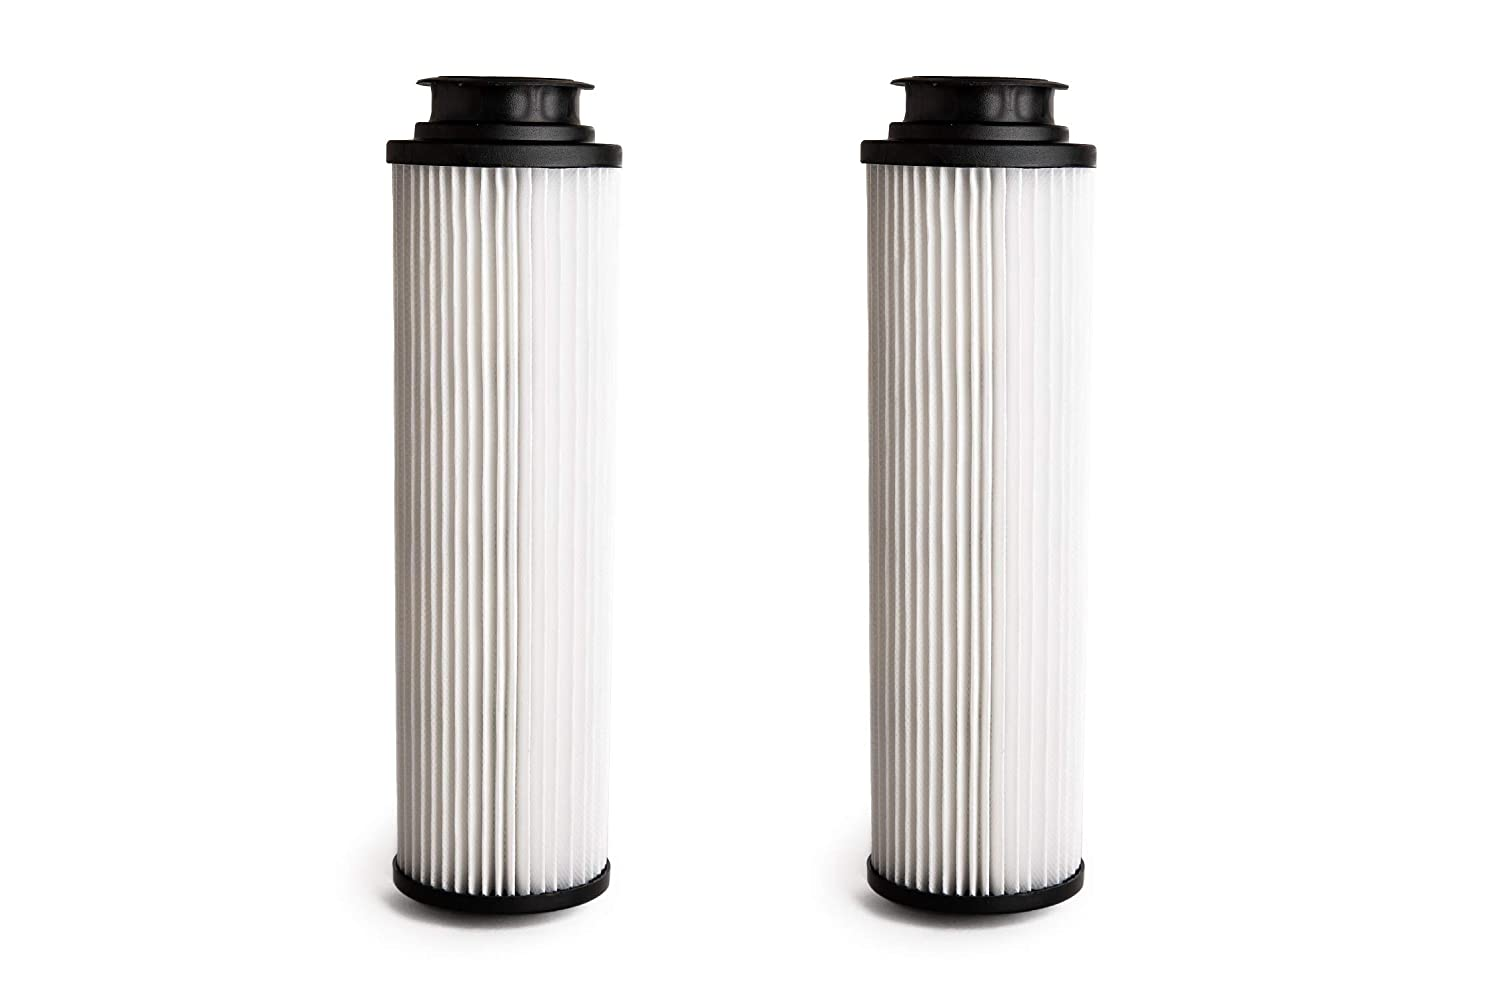 Green Label 2 PACK Type 201 HEPA Filters for Hoover Windtunnel, Savvy & Empower vacuum cleaners. Replaces OEM# 43611042, 42611049, 40140201. Long-Life Washable and Reusable